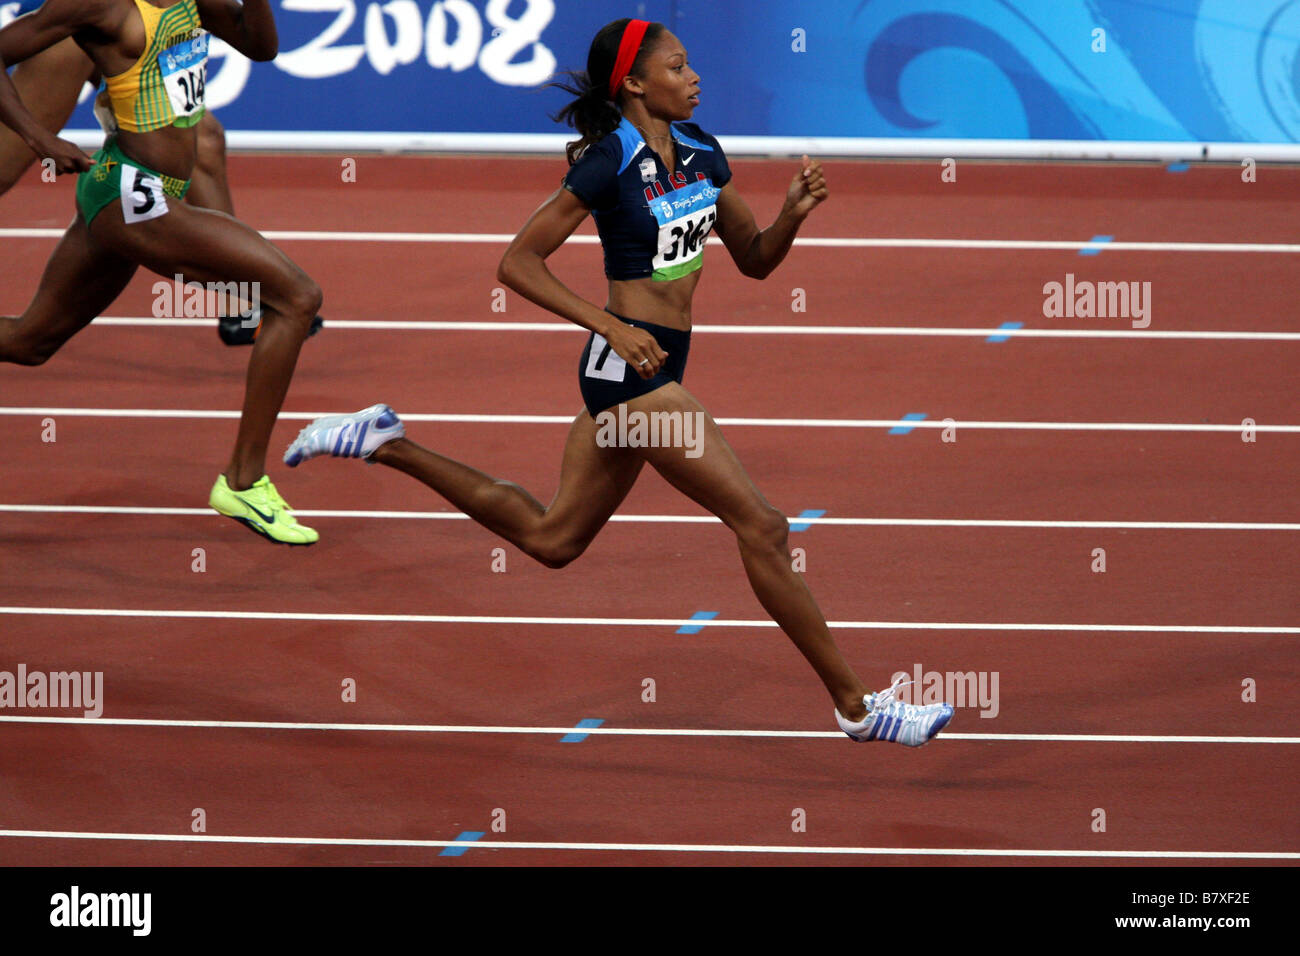 Allyson FELIX JPN August 20 2008 Athletics Womens 200m Semi final during the track and field athletics event at - Stock Image